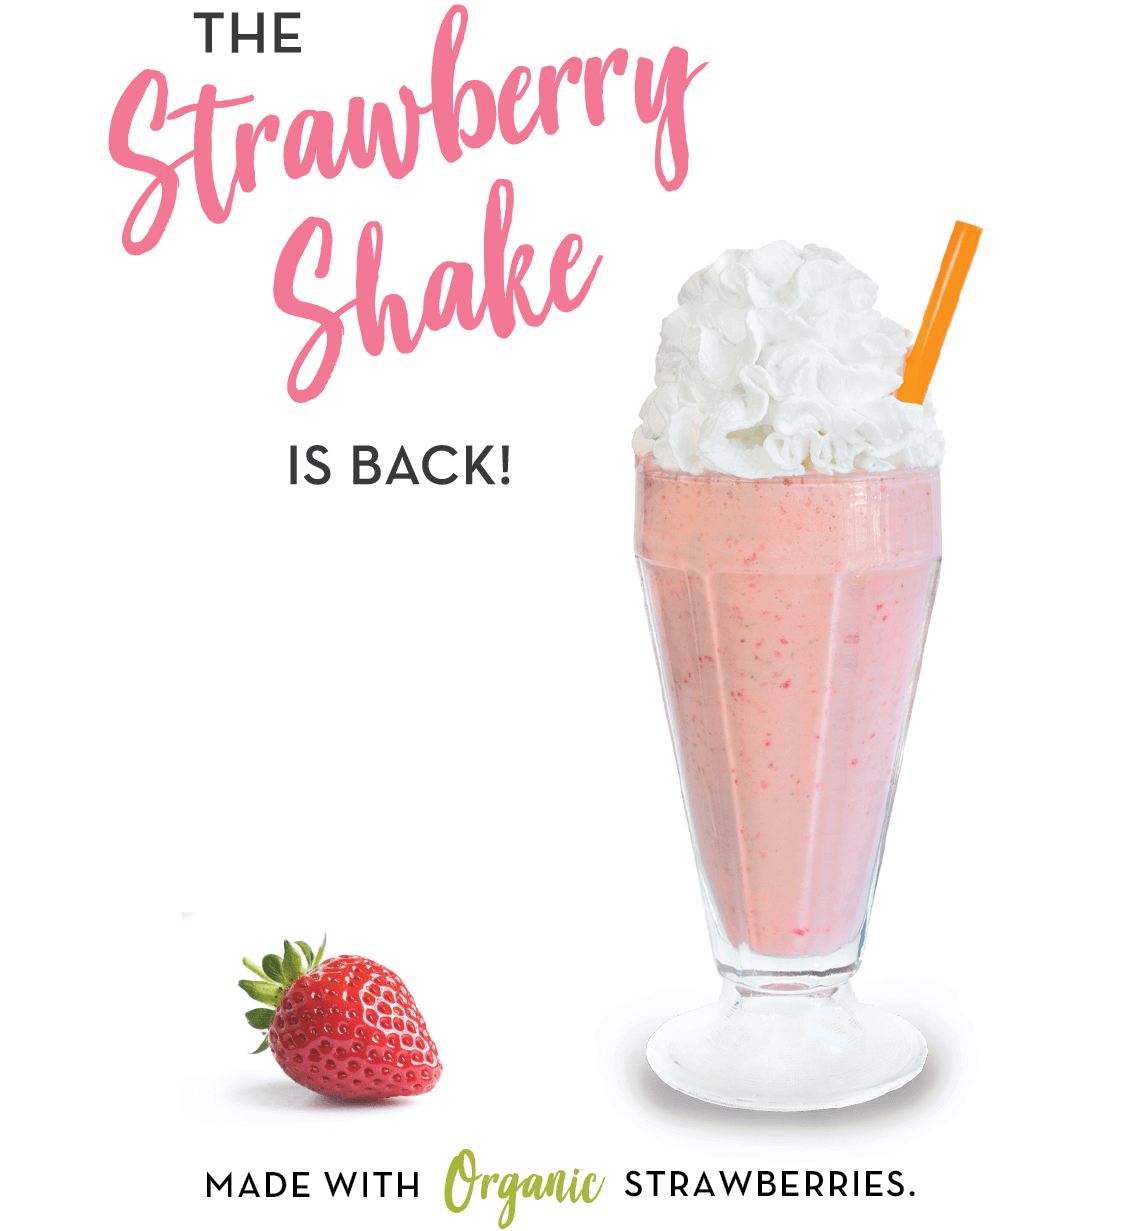 The Strawberry Shake is Back - but only for a Limited Time at Burger Lounge!